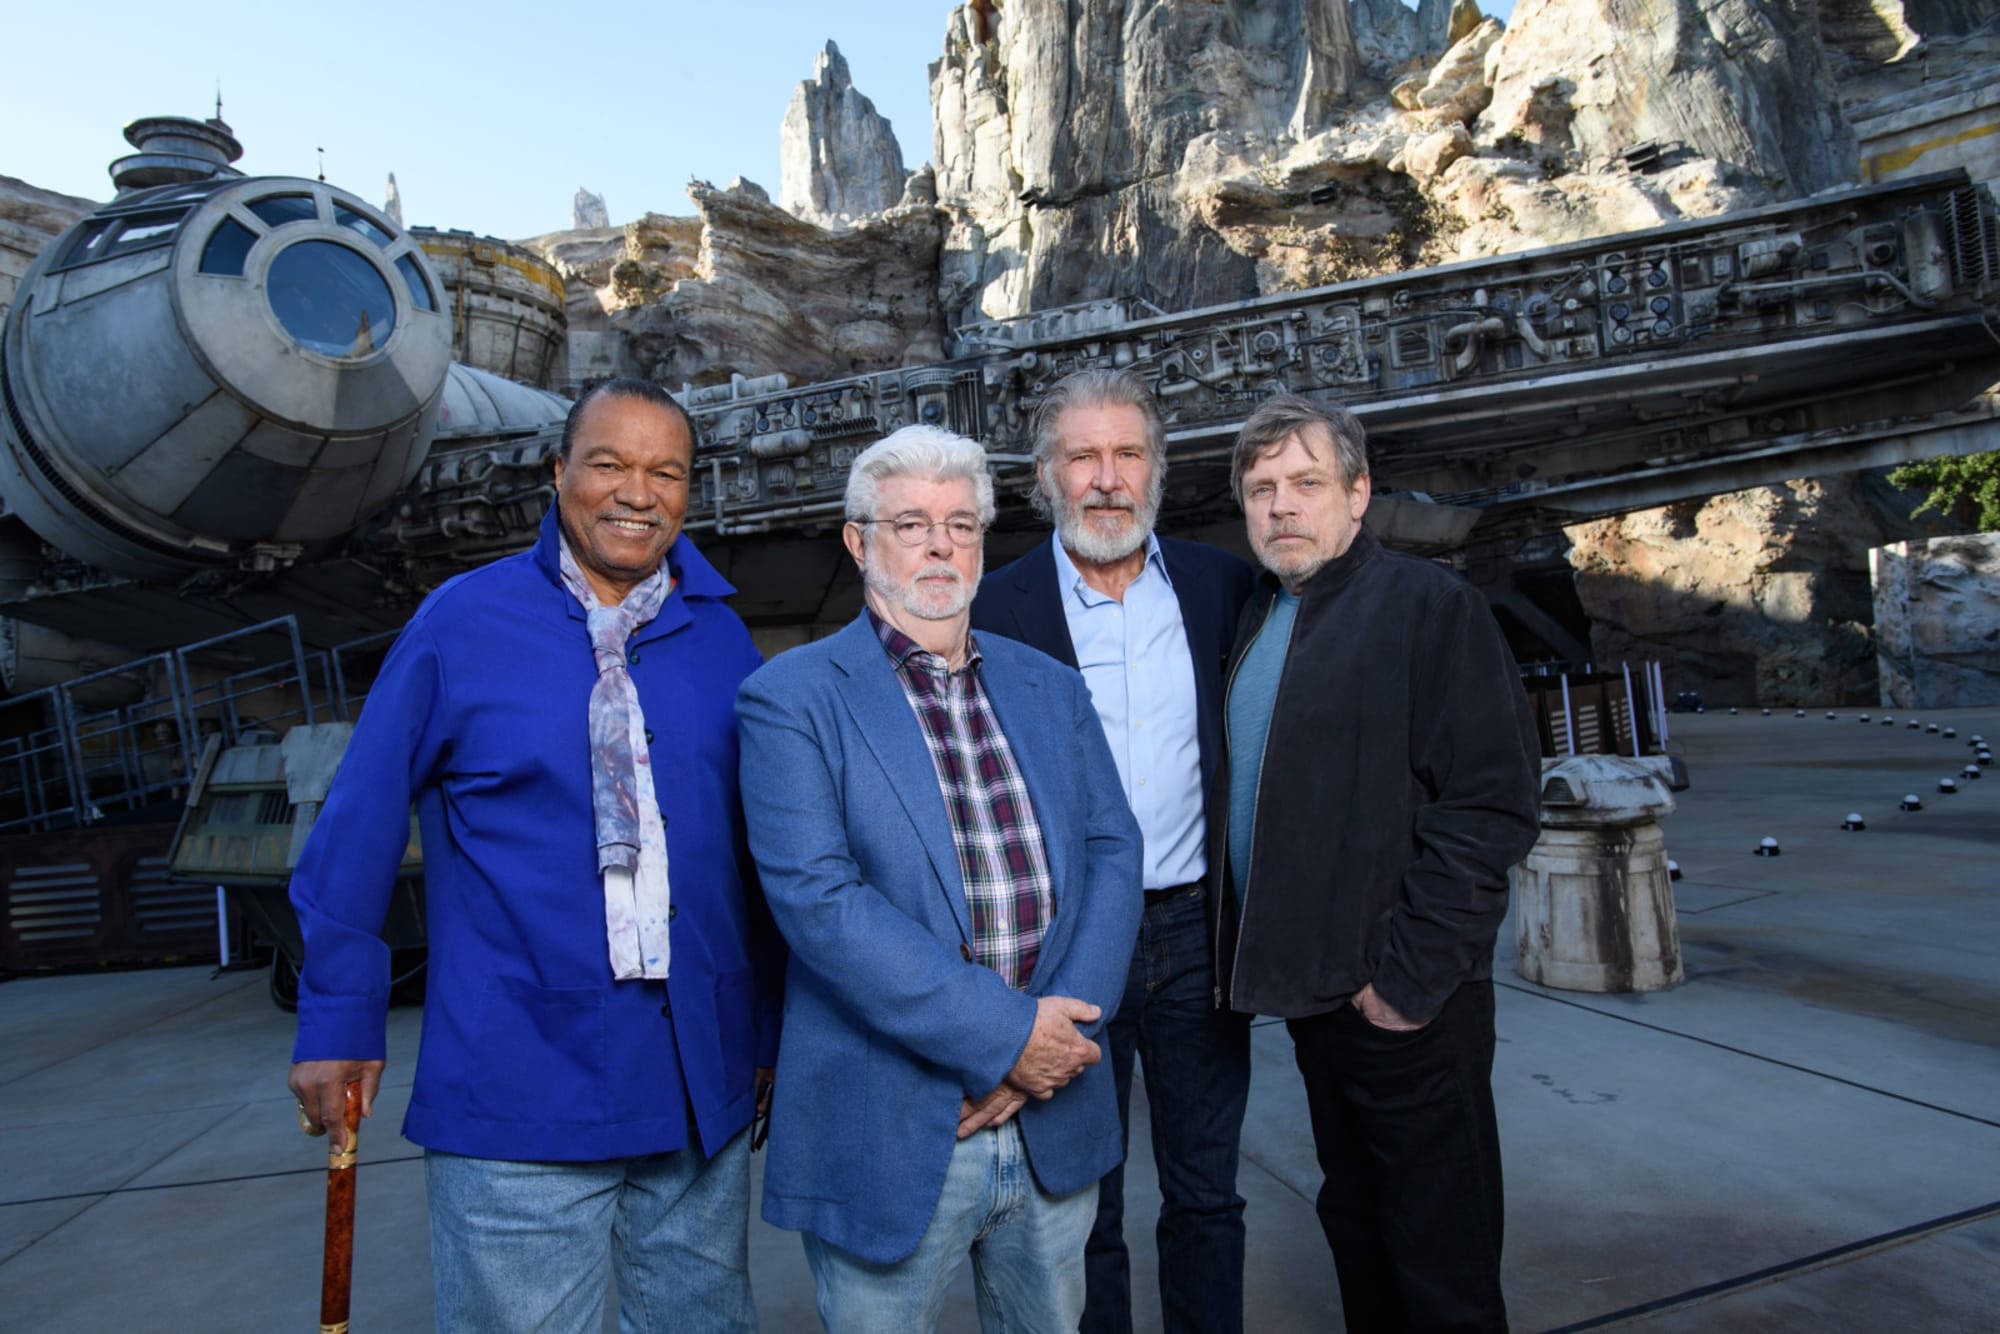 Billy Dee Williams, George Lucas, Harrison Ford, and Mark Hamill at Star Wars: Galaxy's Edge